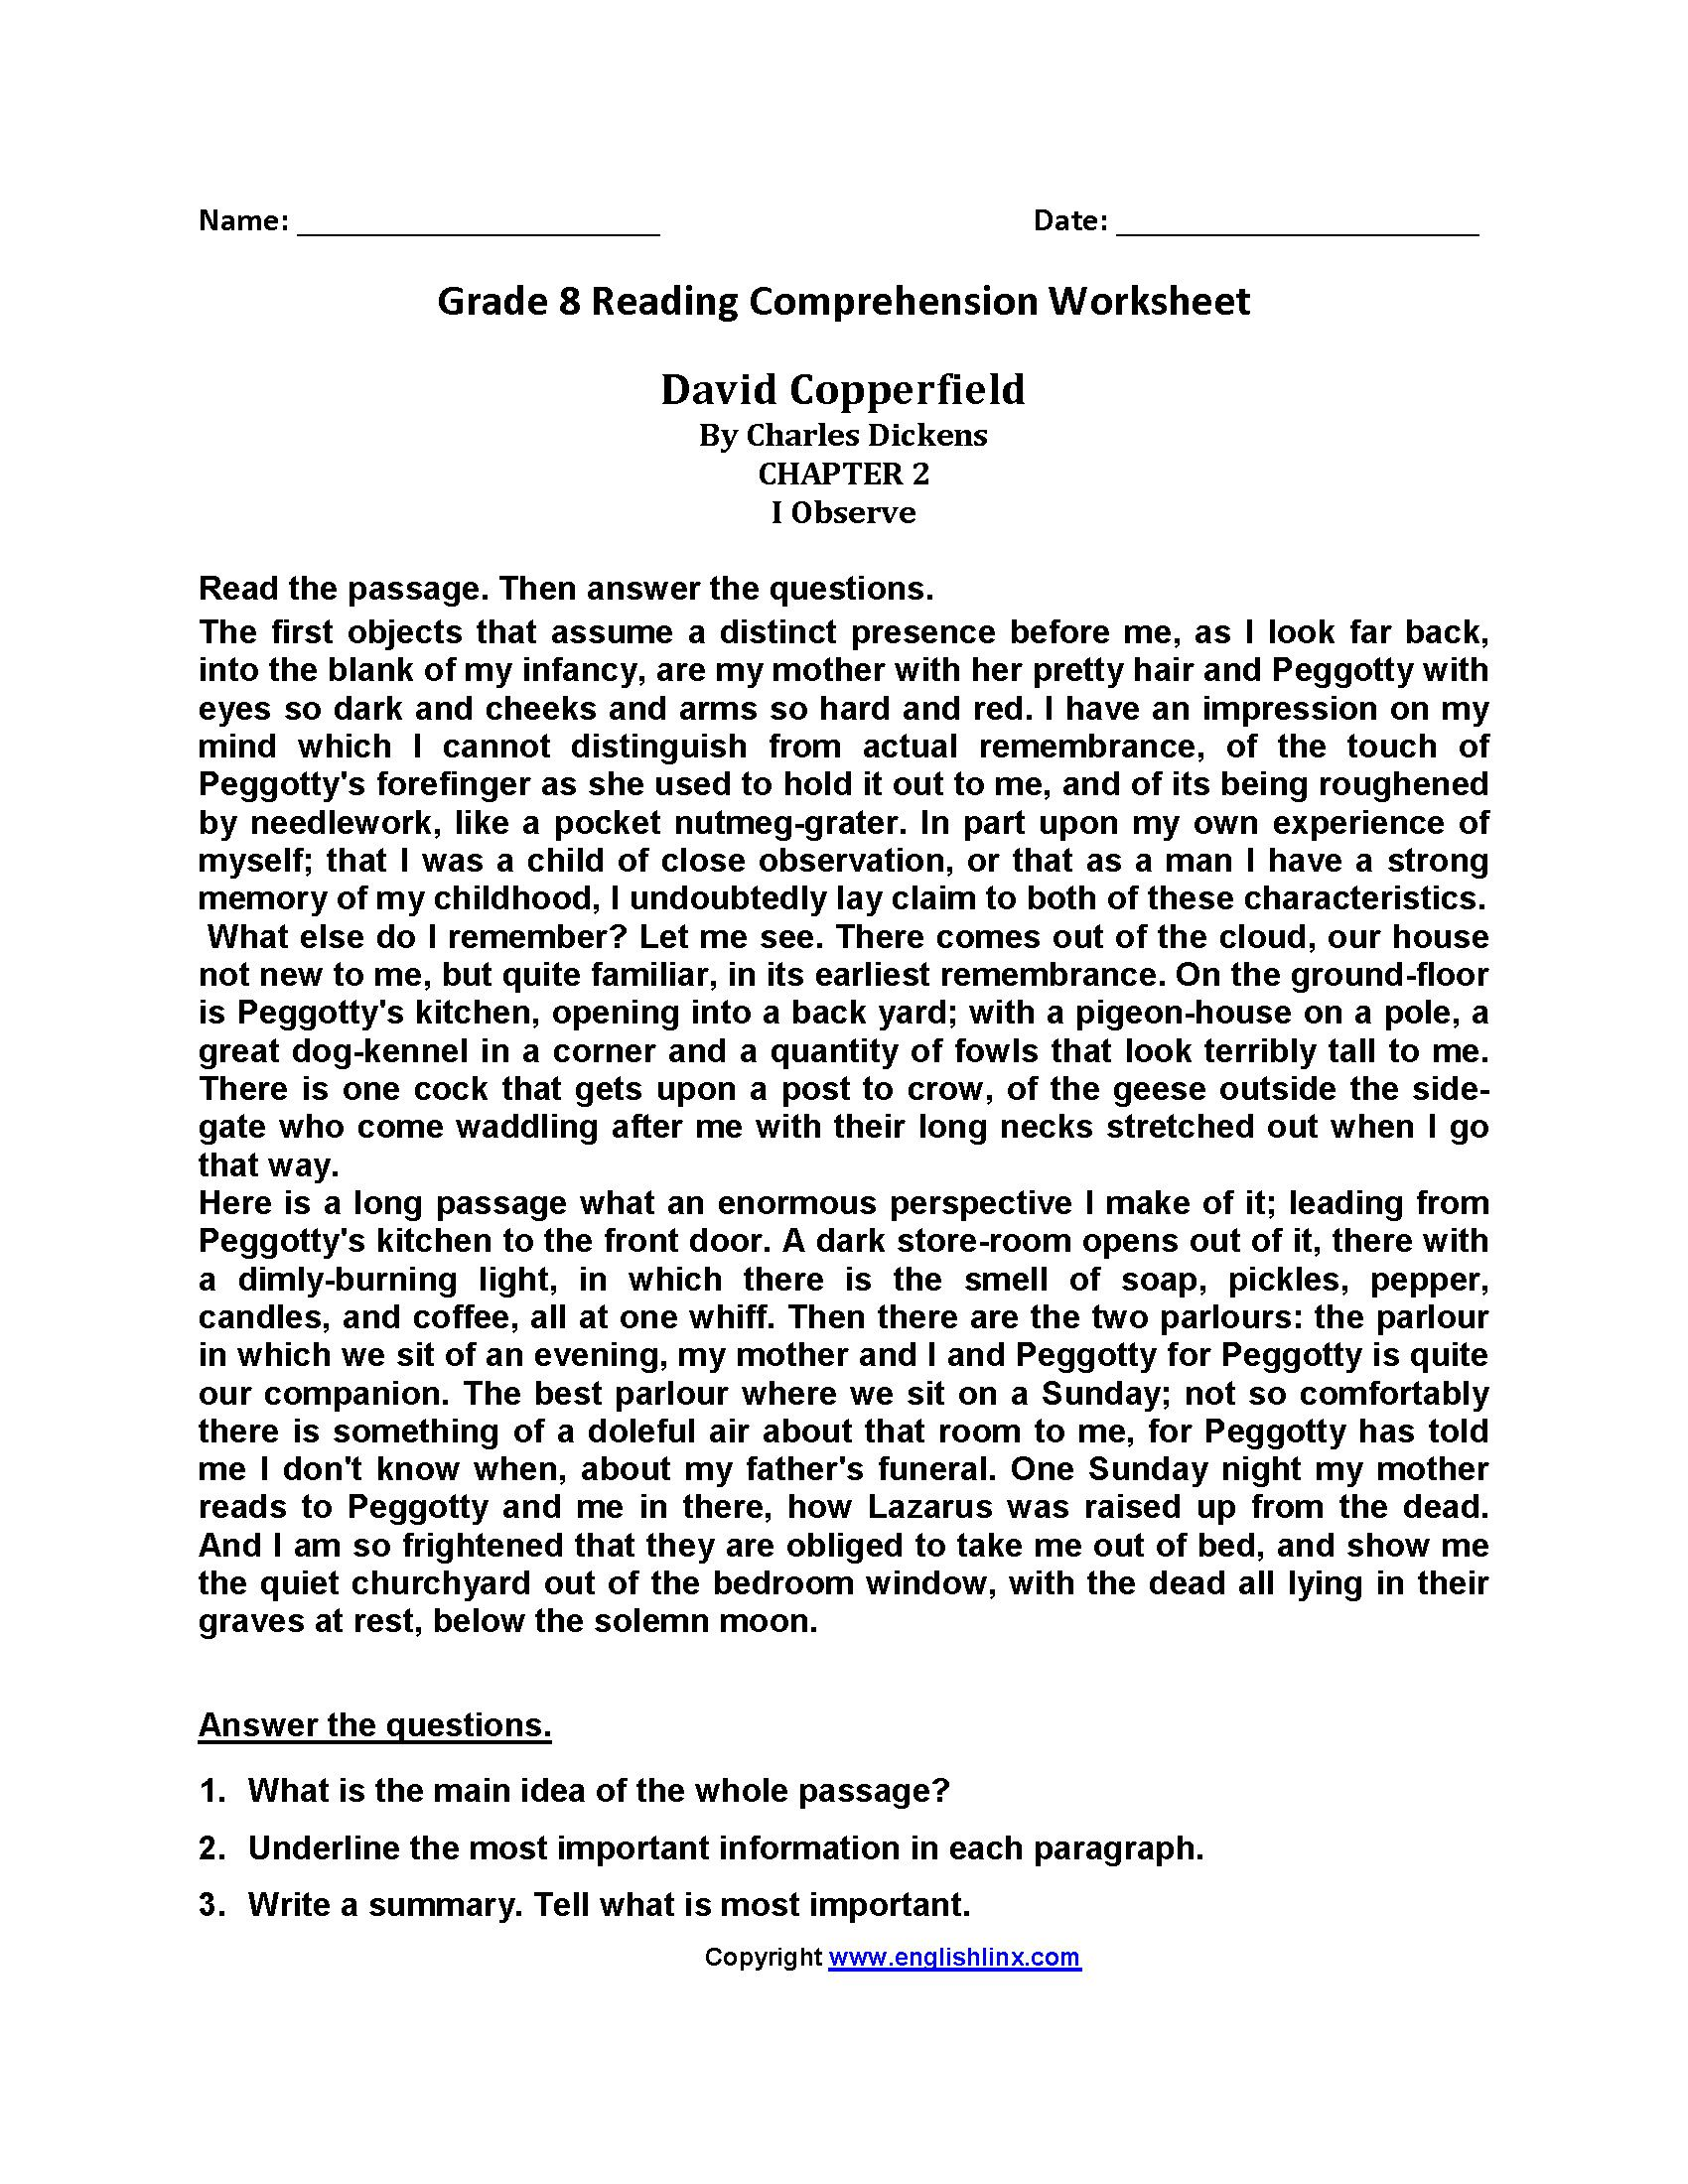 4 Worksheets Reading Comprehension David Copperfield Free